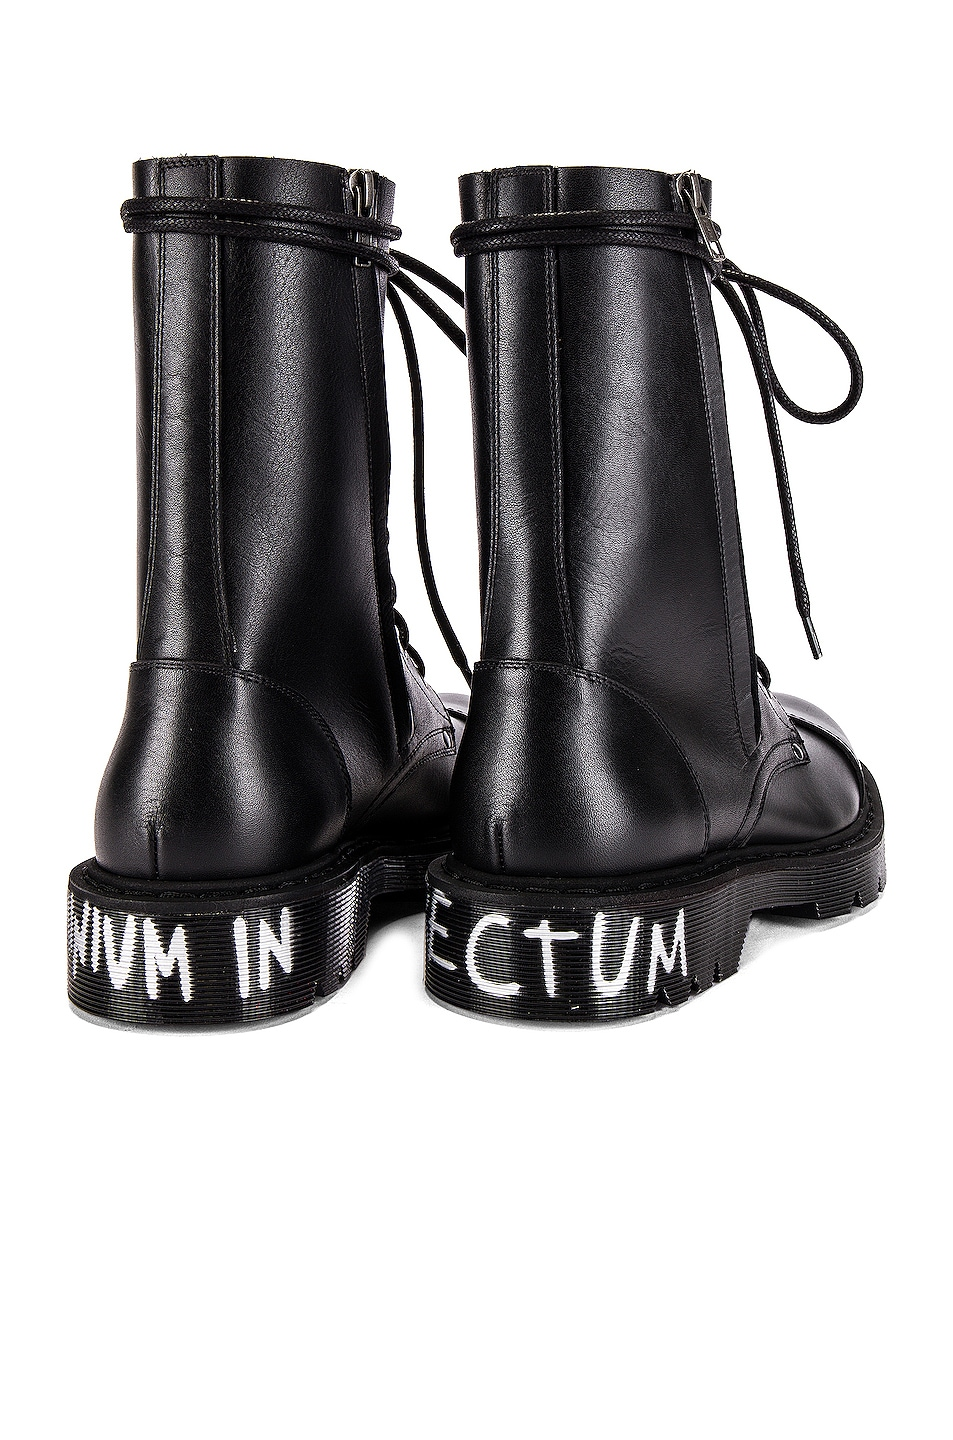 Image 7 of VETEMENTS Dominium In Rectum Army Boots in Black